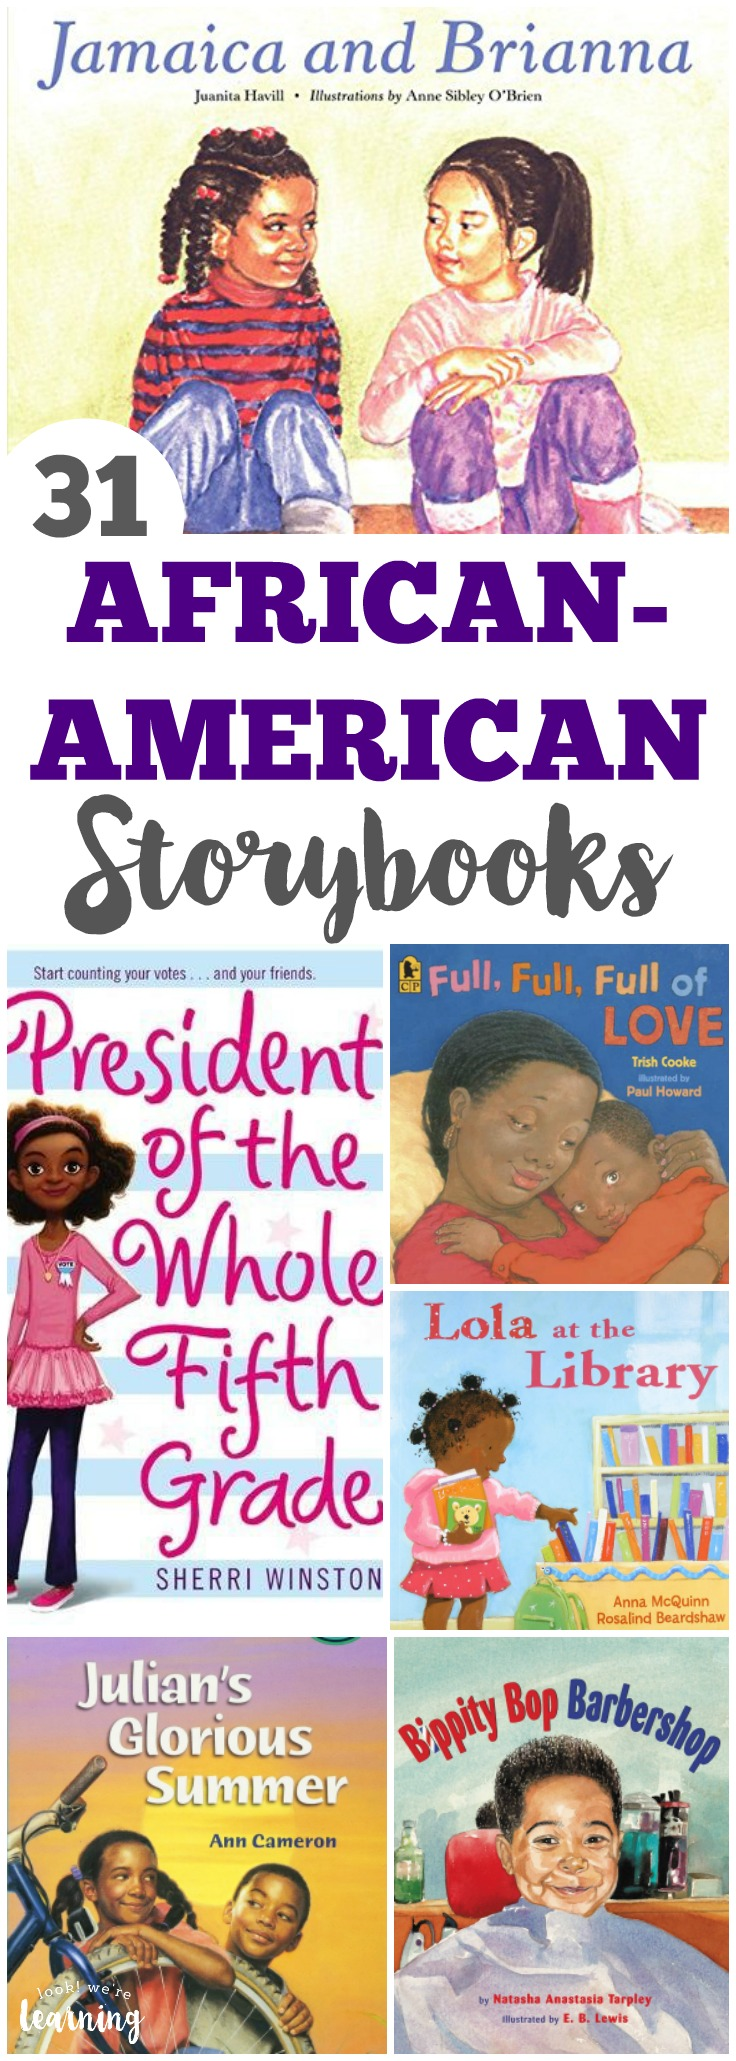 Read these wonderful African American story books for kids with your little ones!